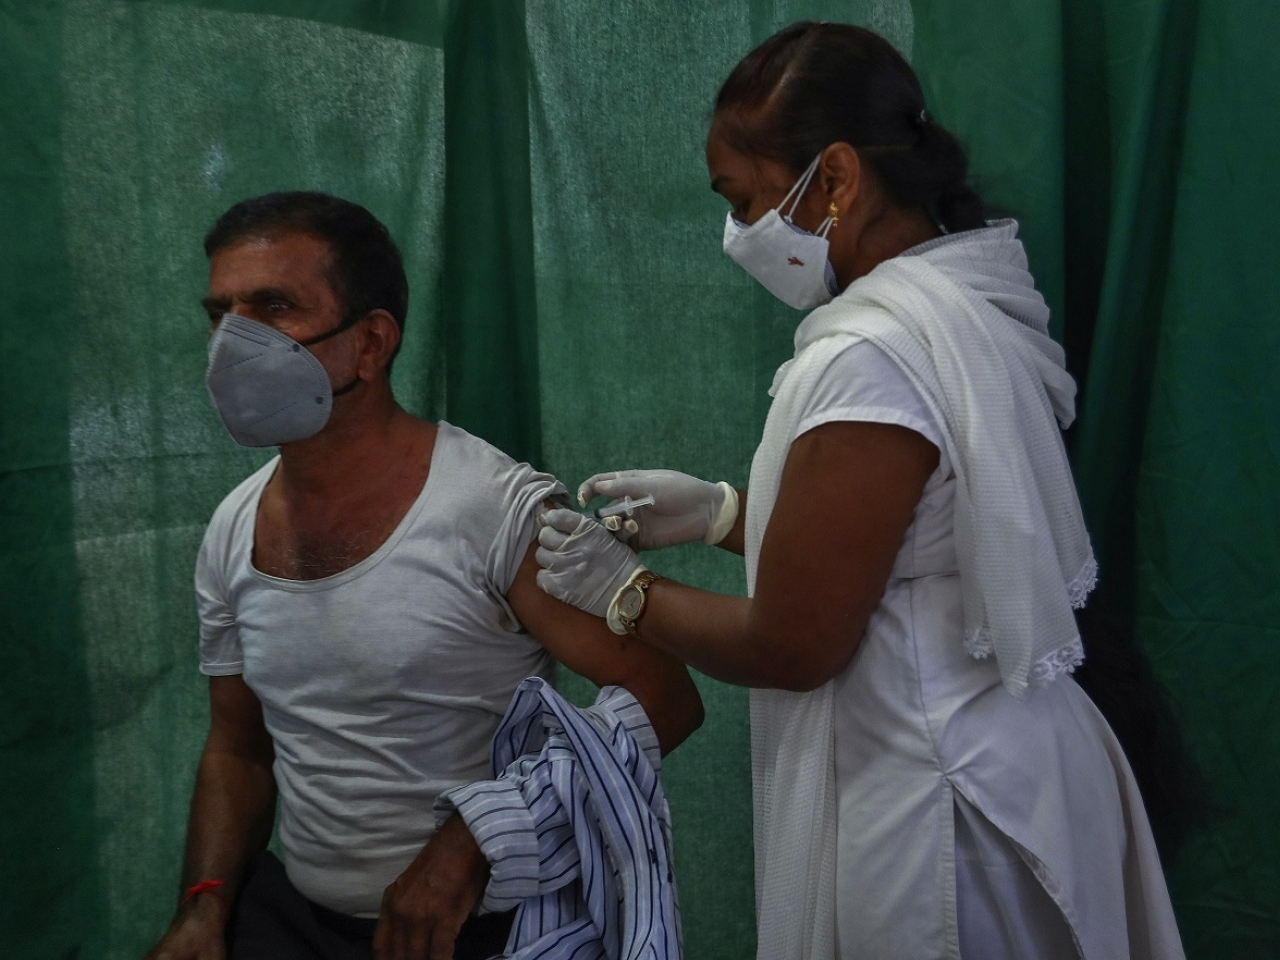 The new measures aim to improve access to emergency health care during the pandemic. File photo: AP